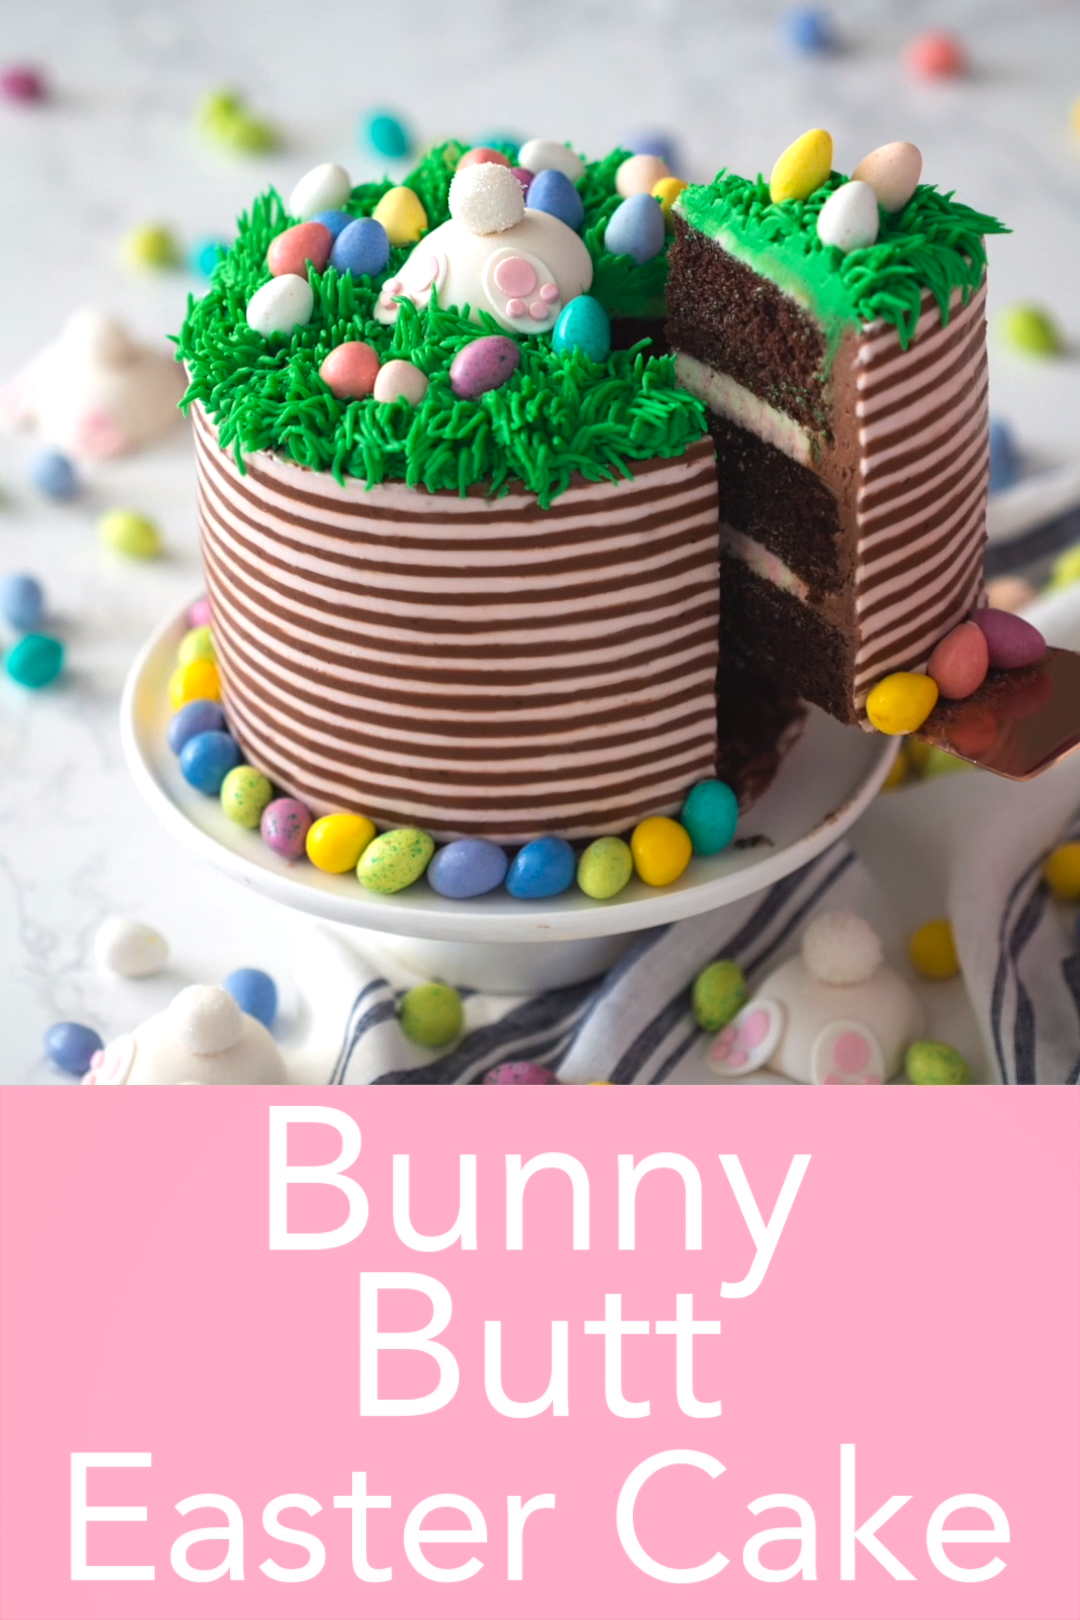 Photo of Bunny Butt Easter Cake